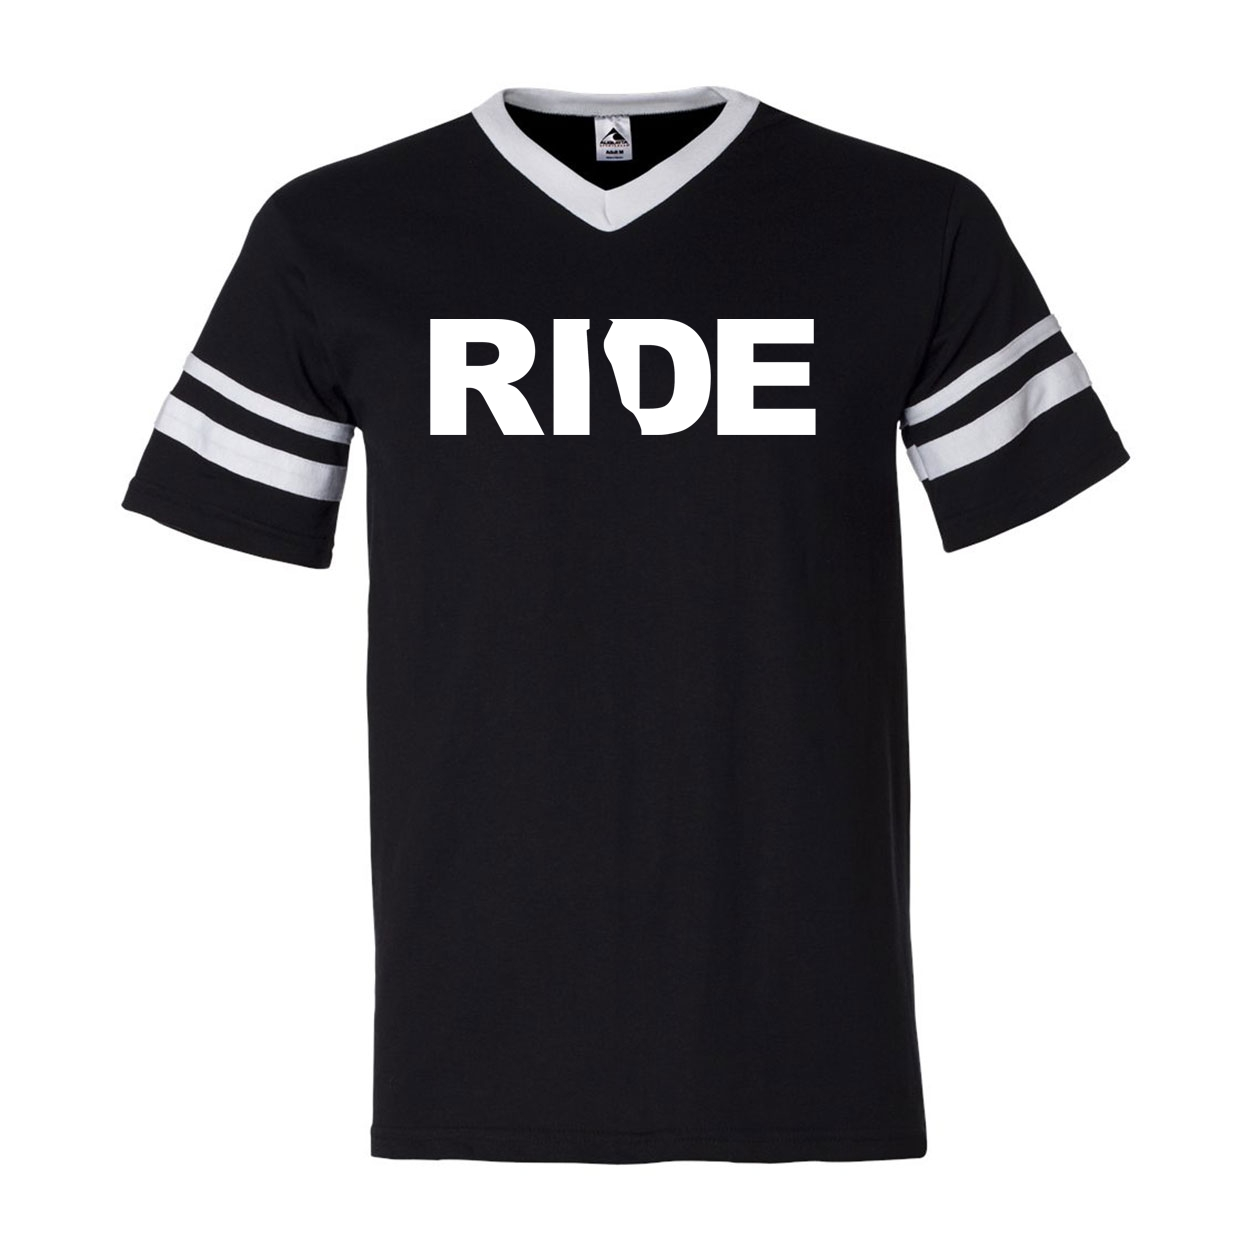 Ride Delaware Classic Premium Striped Jersey T-Shirt Black/White (White Logo)